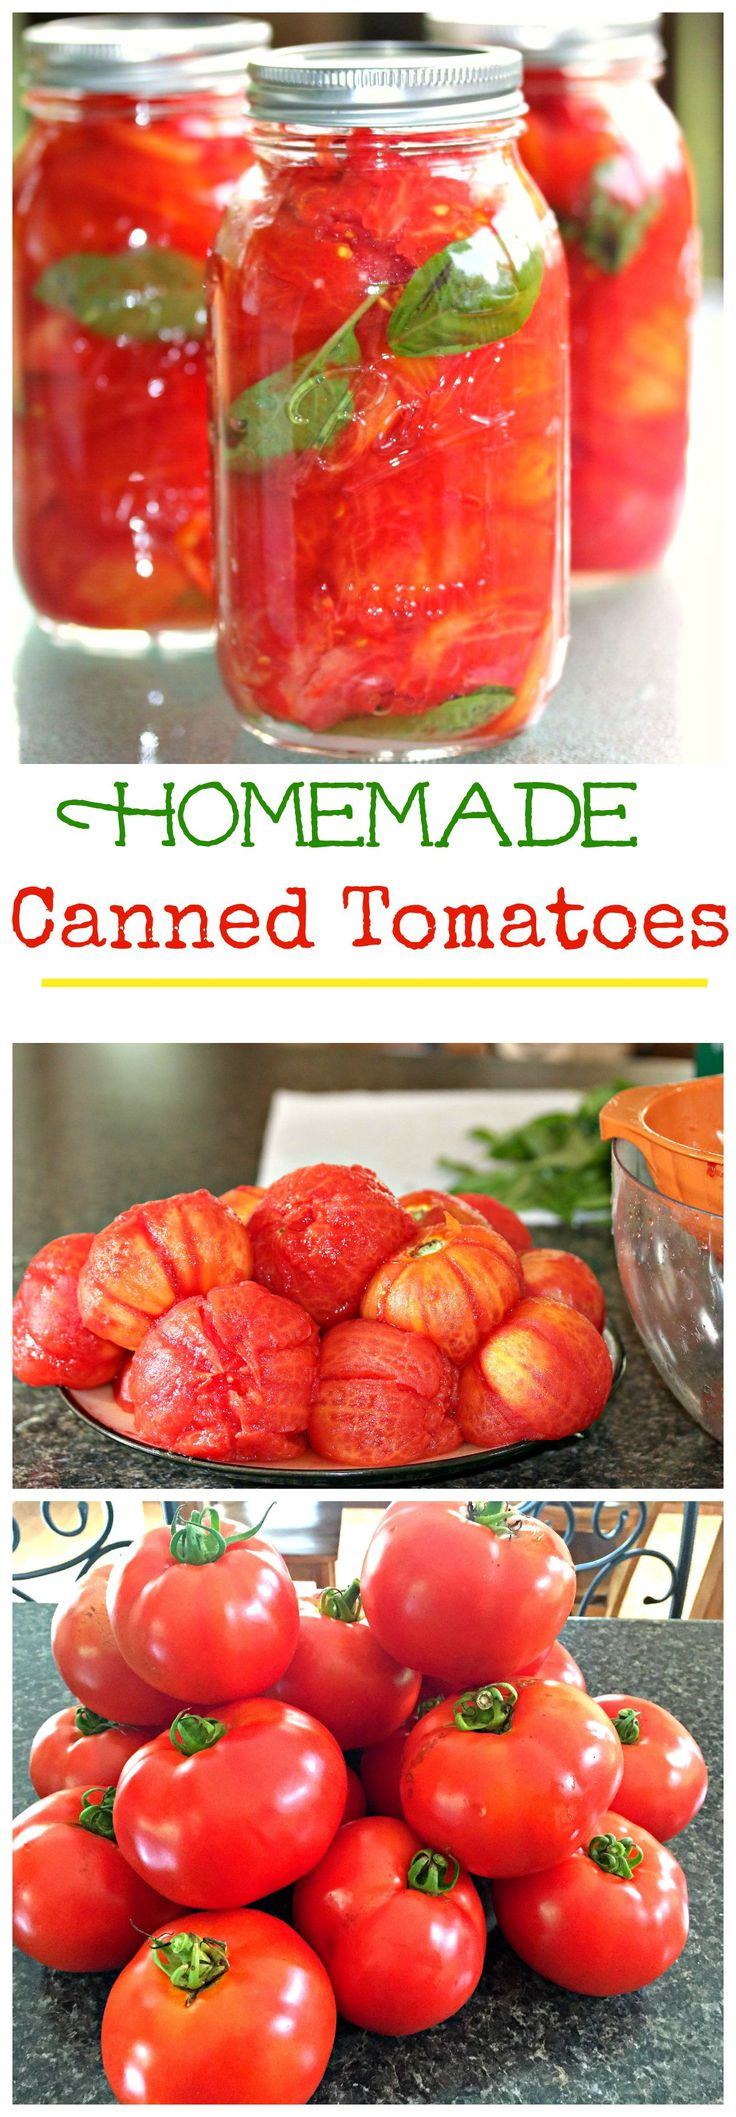 Savory tomatoes preserved easily at home for future use in your favorite salsas and sauces! (w/ step by step pics!)